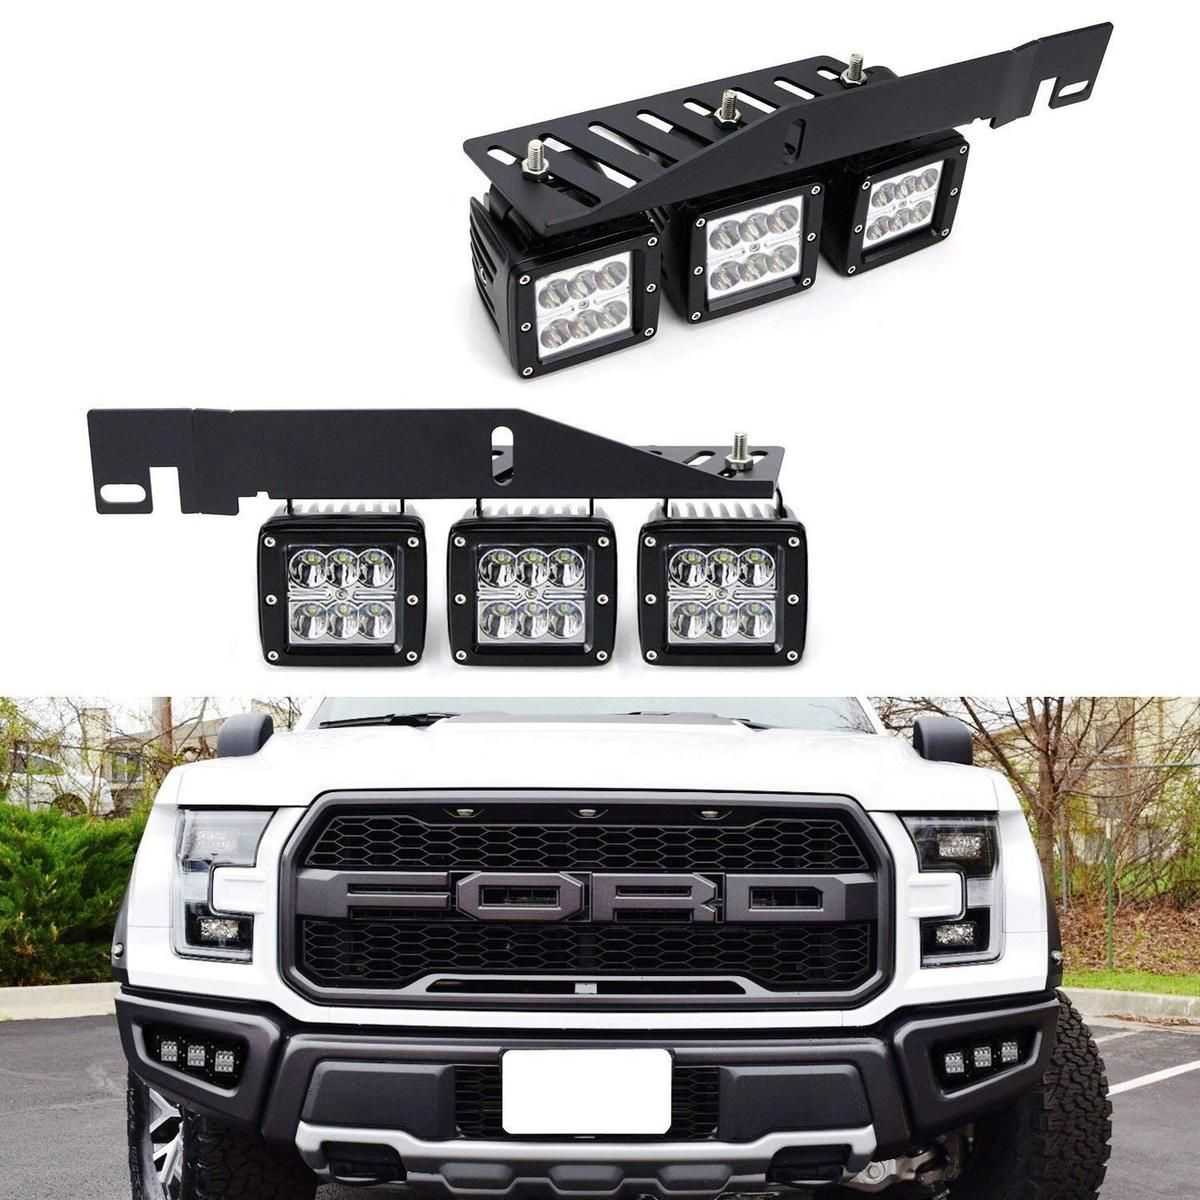 Lower Bumper Mount High Power Led Fog Lighting Kit For 17 Up Ford Raptor 6 Cree 2x3 Led Pod Light Heavy Duty Mounting Brackets Wiring Switch In 2020 Ford Raptor Ford